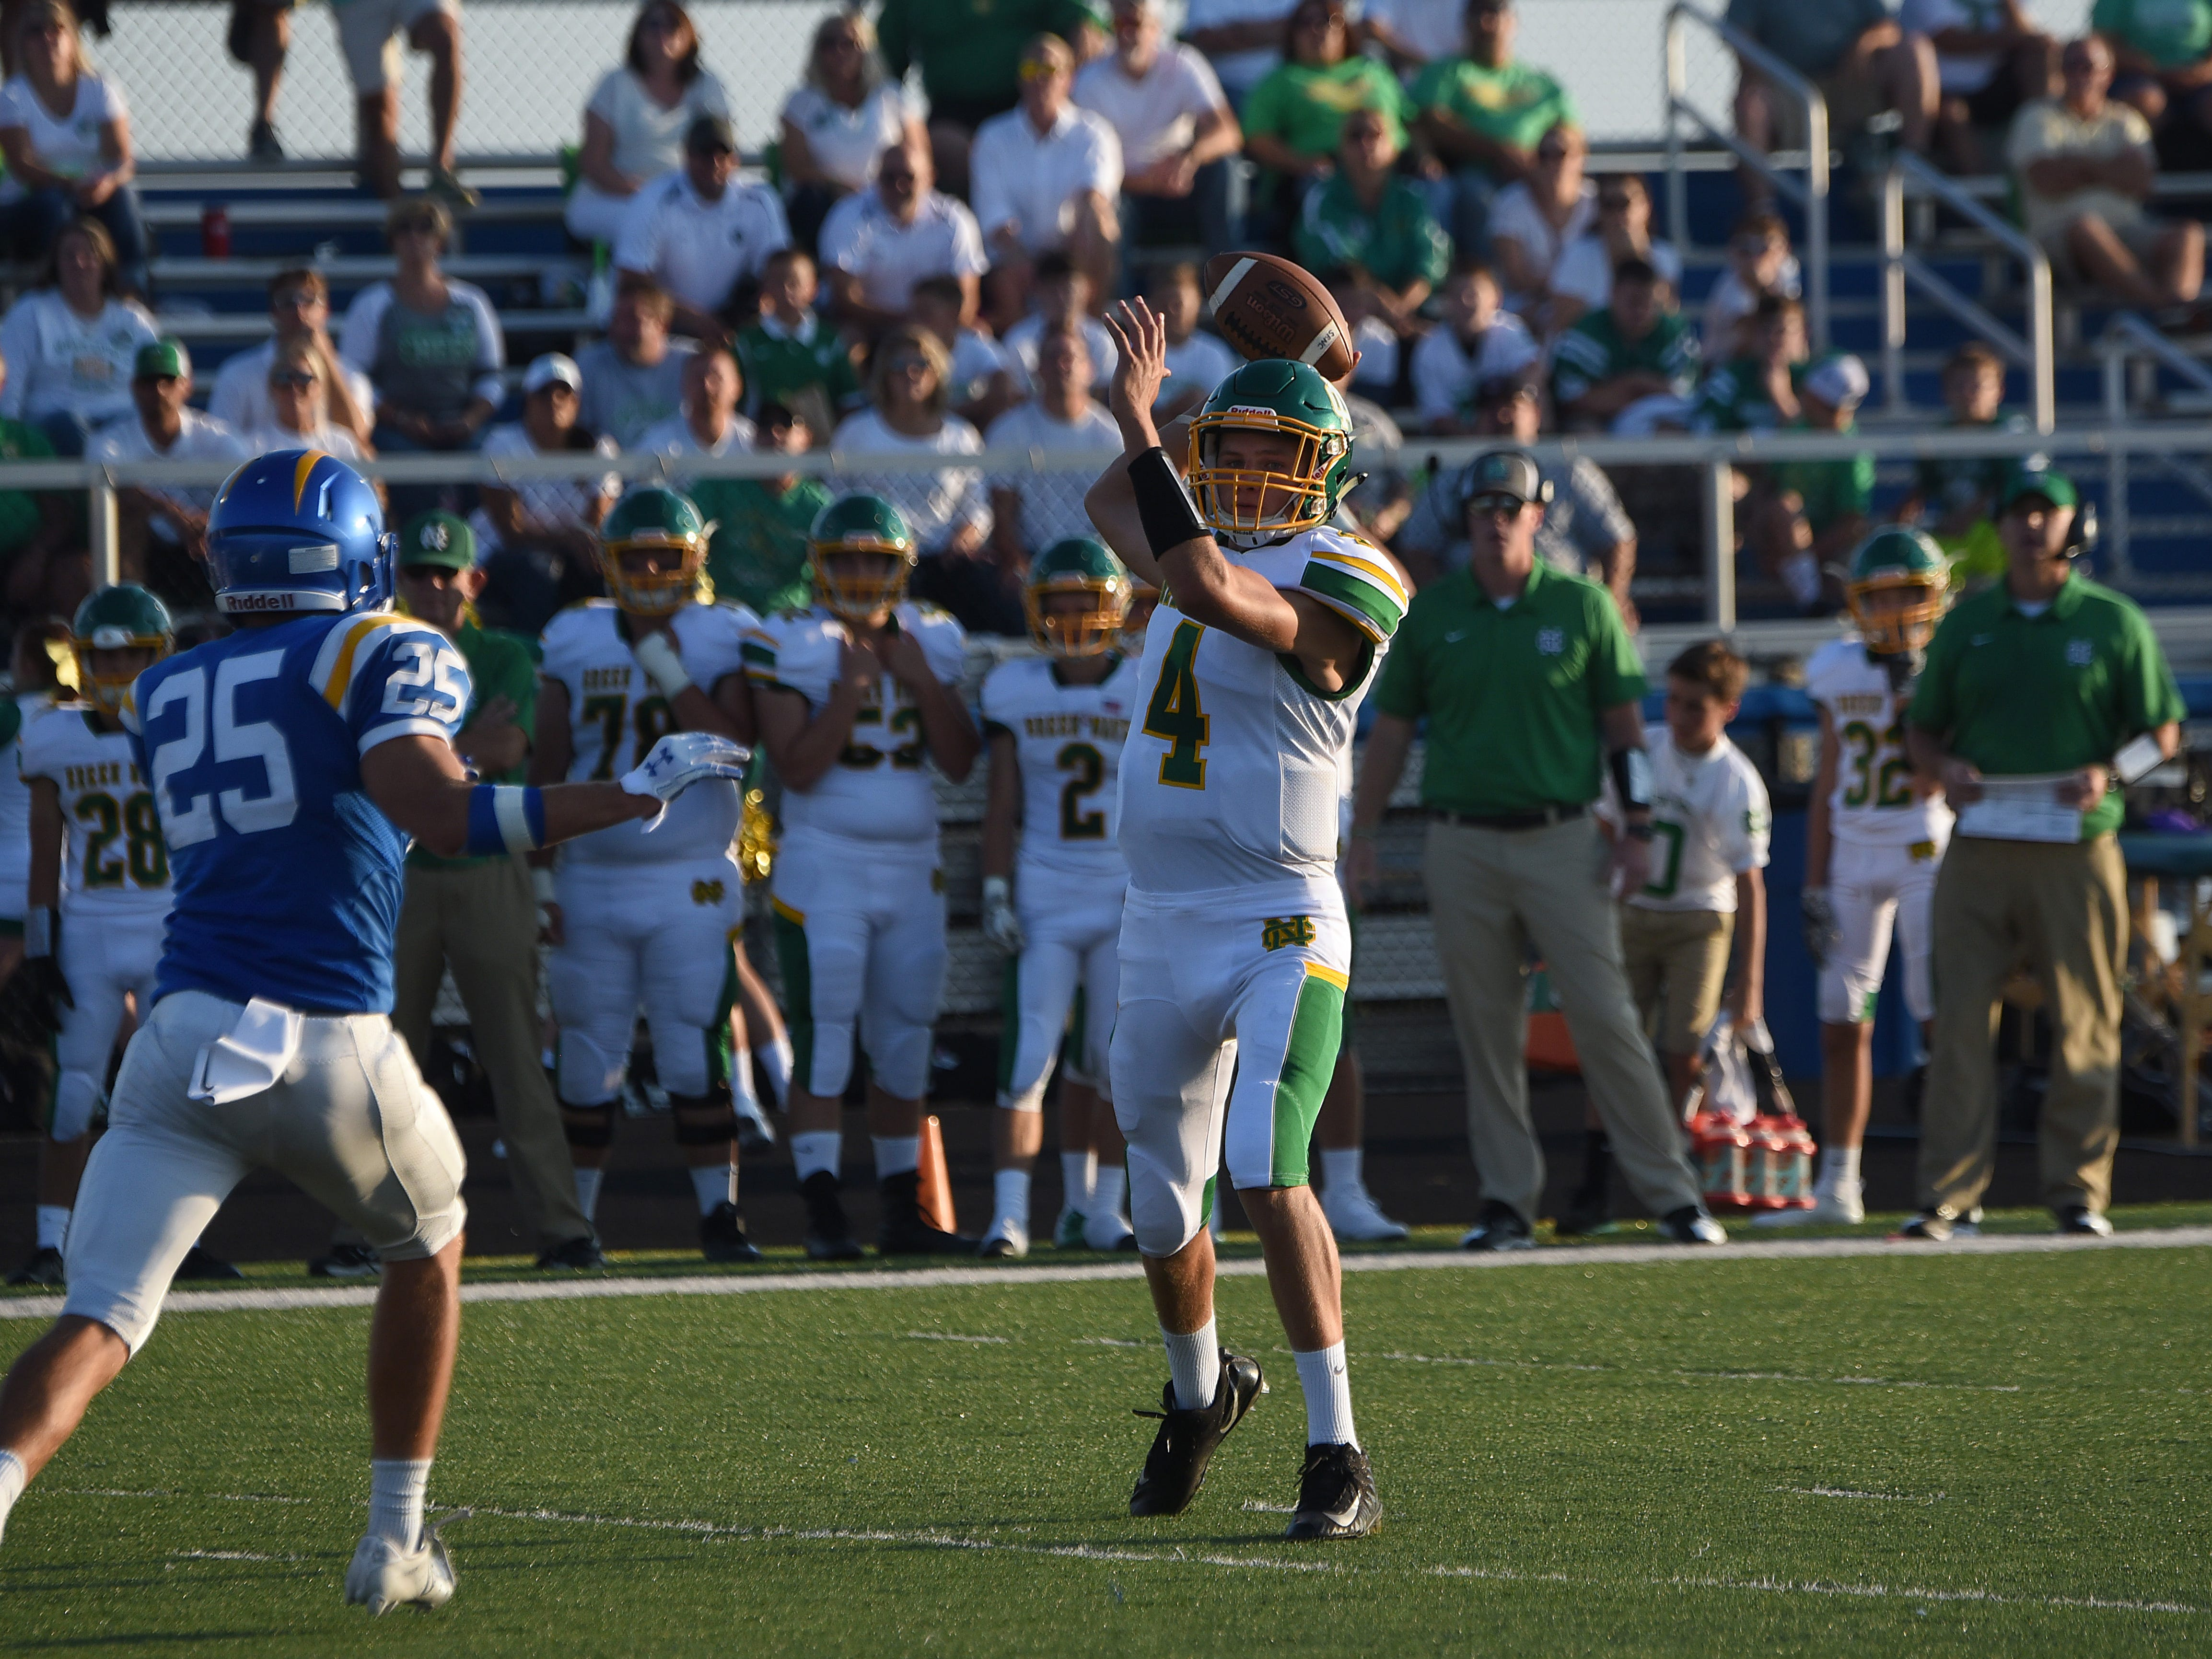 Newark Catholic quarterback Matt Carlisle (right) winds up a pass under pressure from Maysville's Hayden McGee (left) during Thursday's season opening game. The Green Wave defeated the Panthers 17-13.